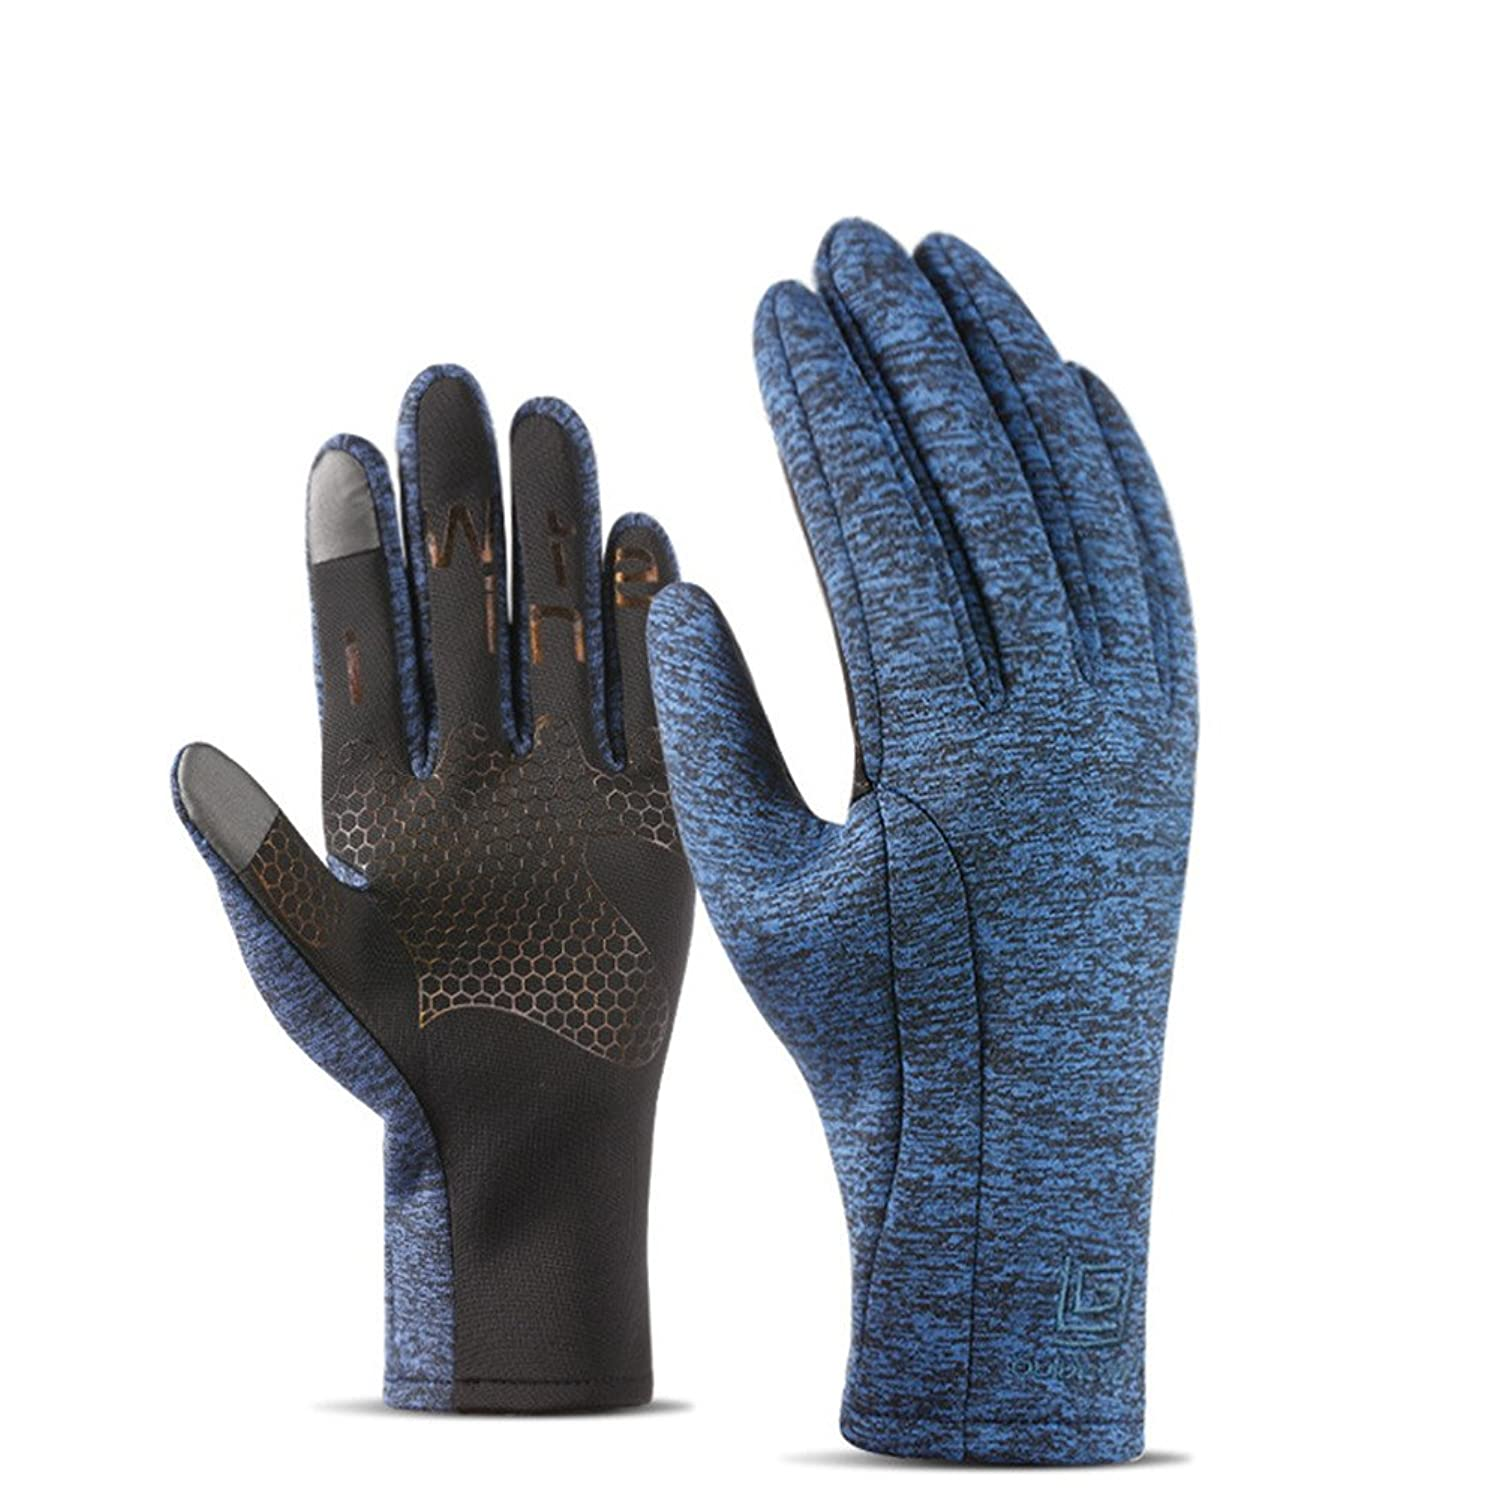 efd916deba687e Unisex Winter Gloves Phone Touch Screen Waterproof Warm Inner Thermal for  Men Women Work Sports Outdoor Motorcycle Cycling